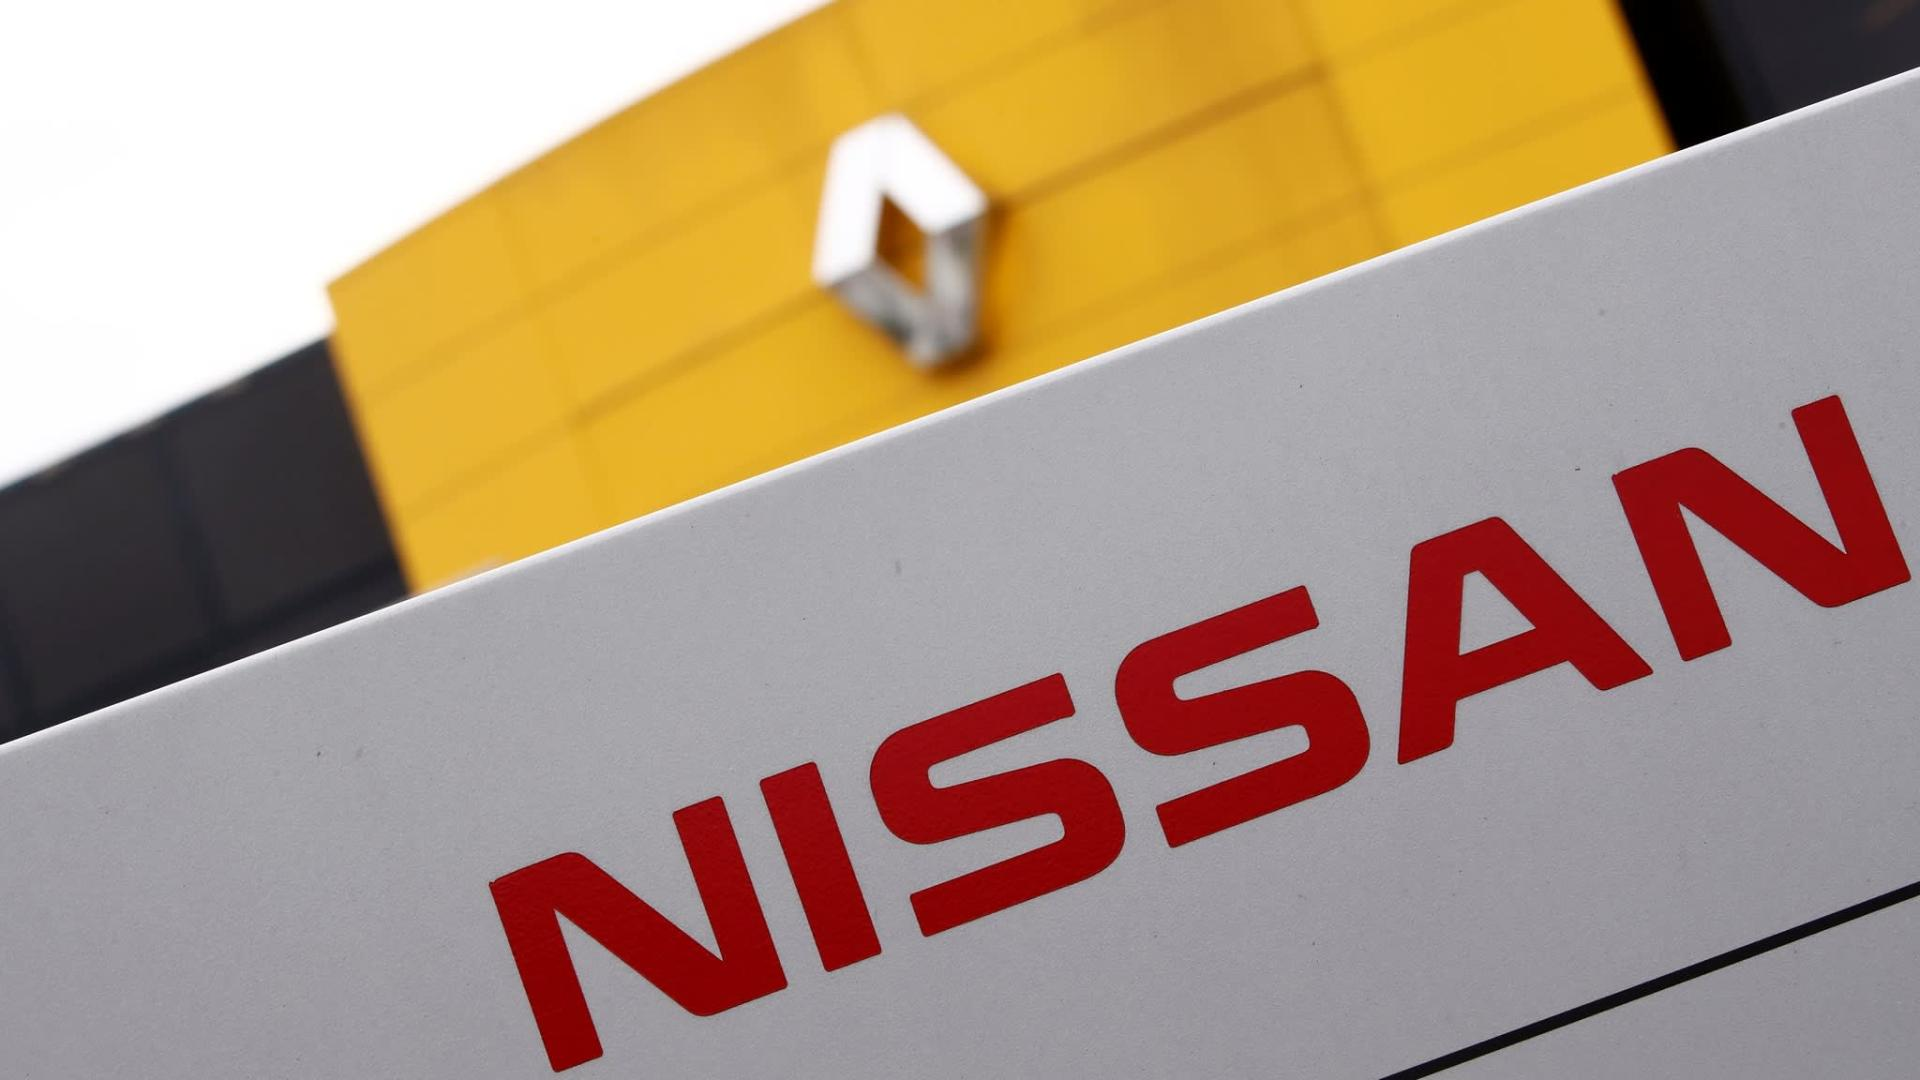 Nissan says not considering dissolving alliance with Renault